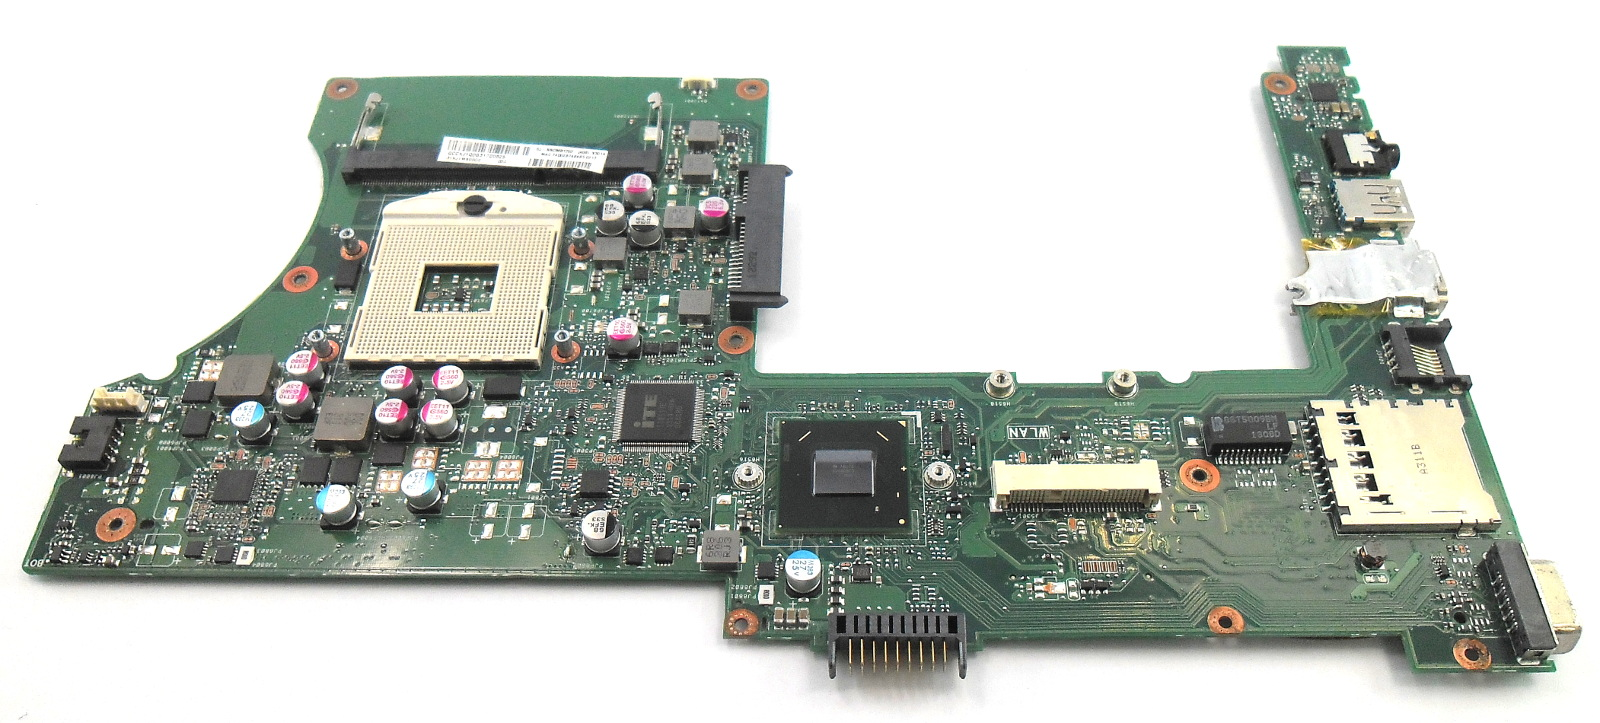 Asus X501A Laptop Motherboard 60-NNOMB1202-A06 rPGA 989